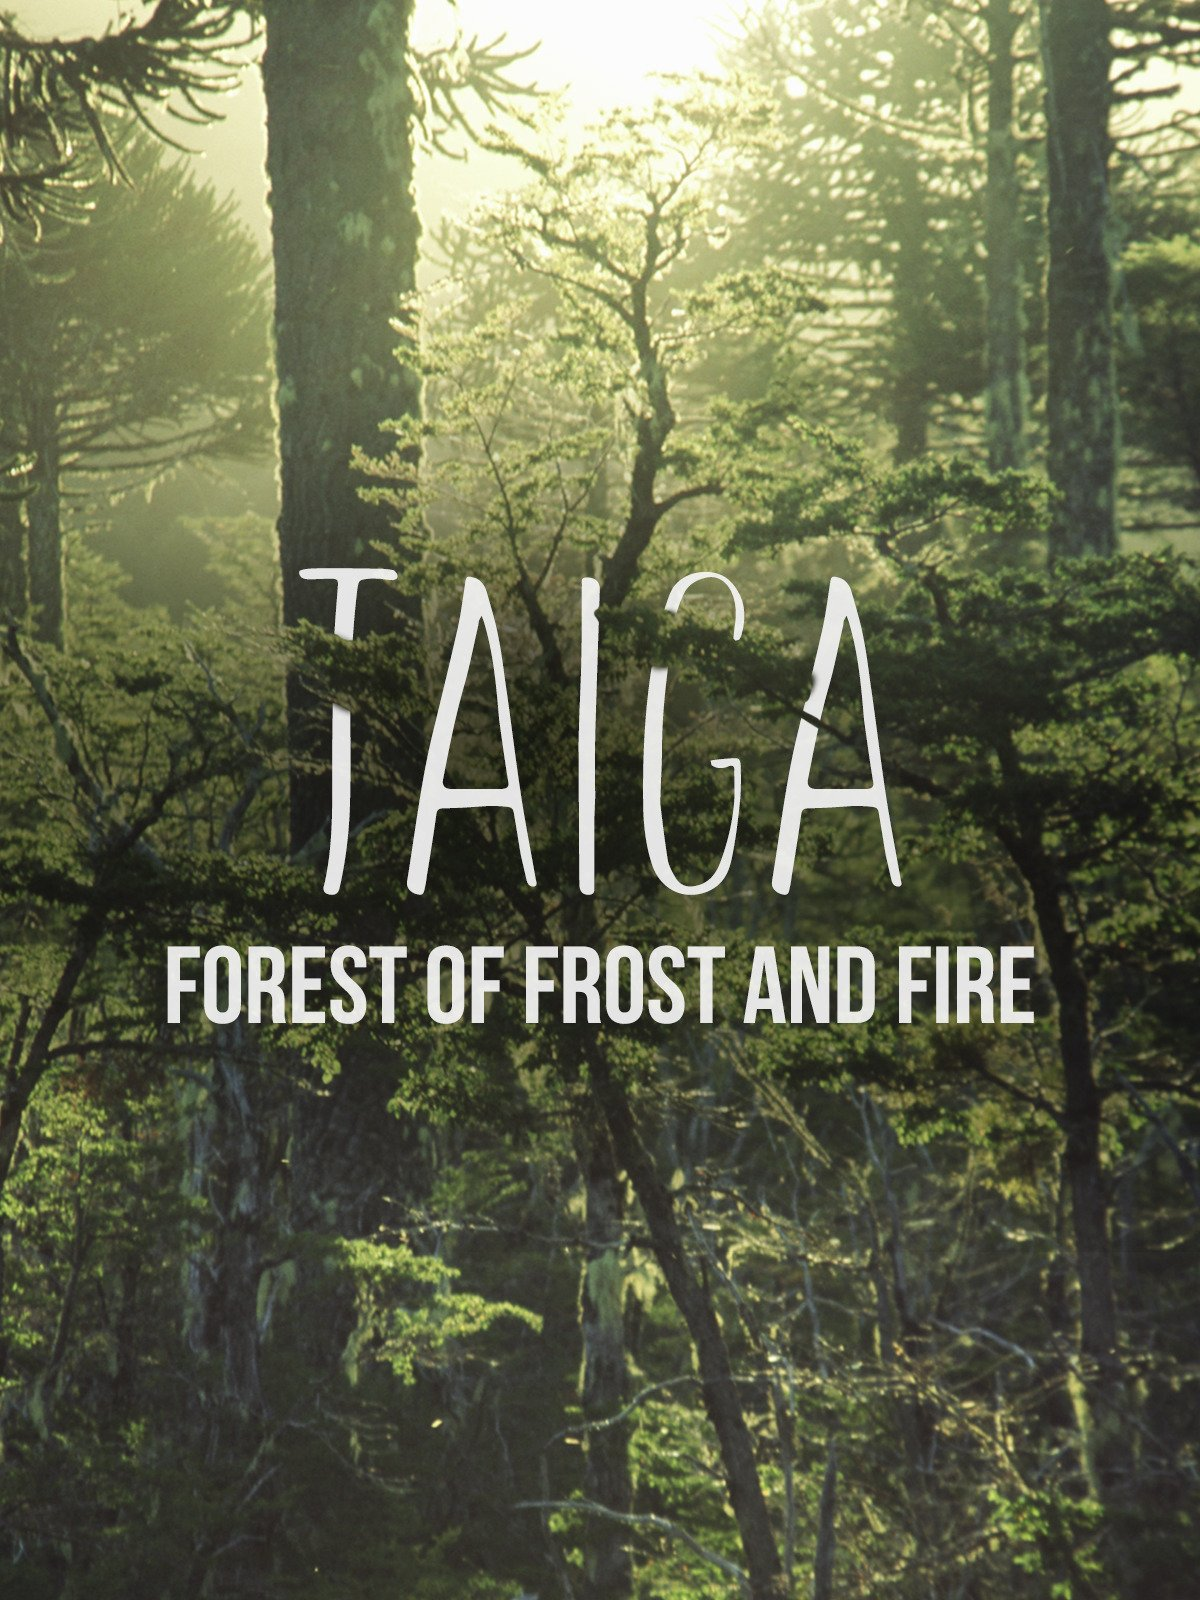 Taiga: Forest of Frost and Fire on Amazon Prime Video UK